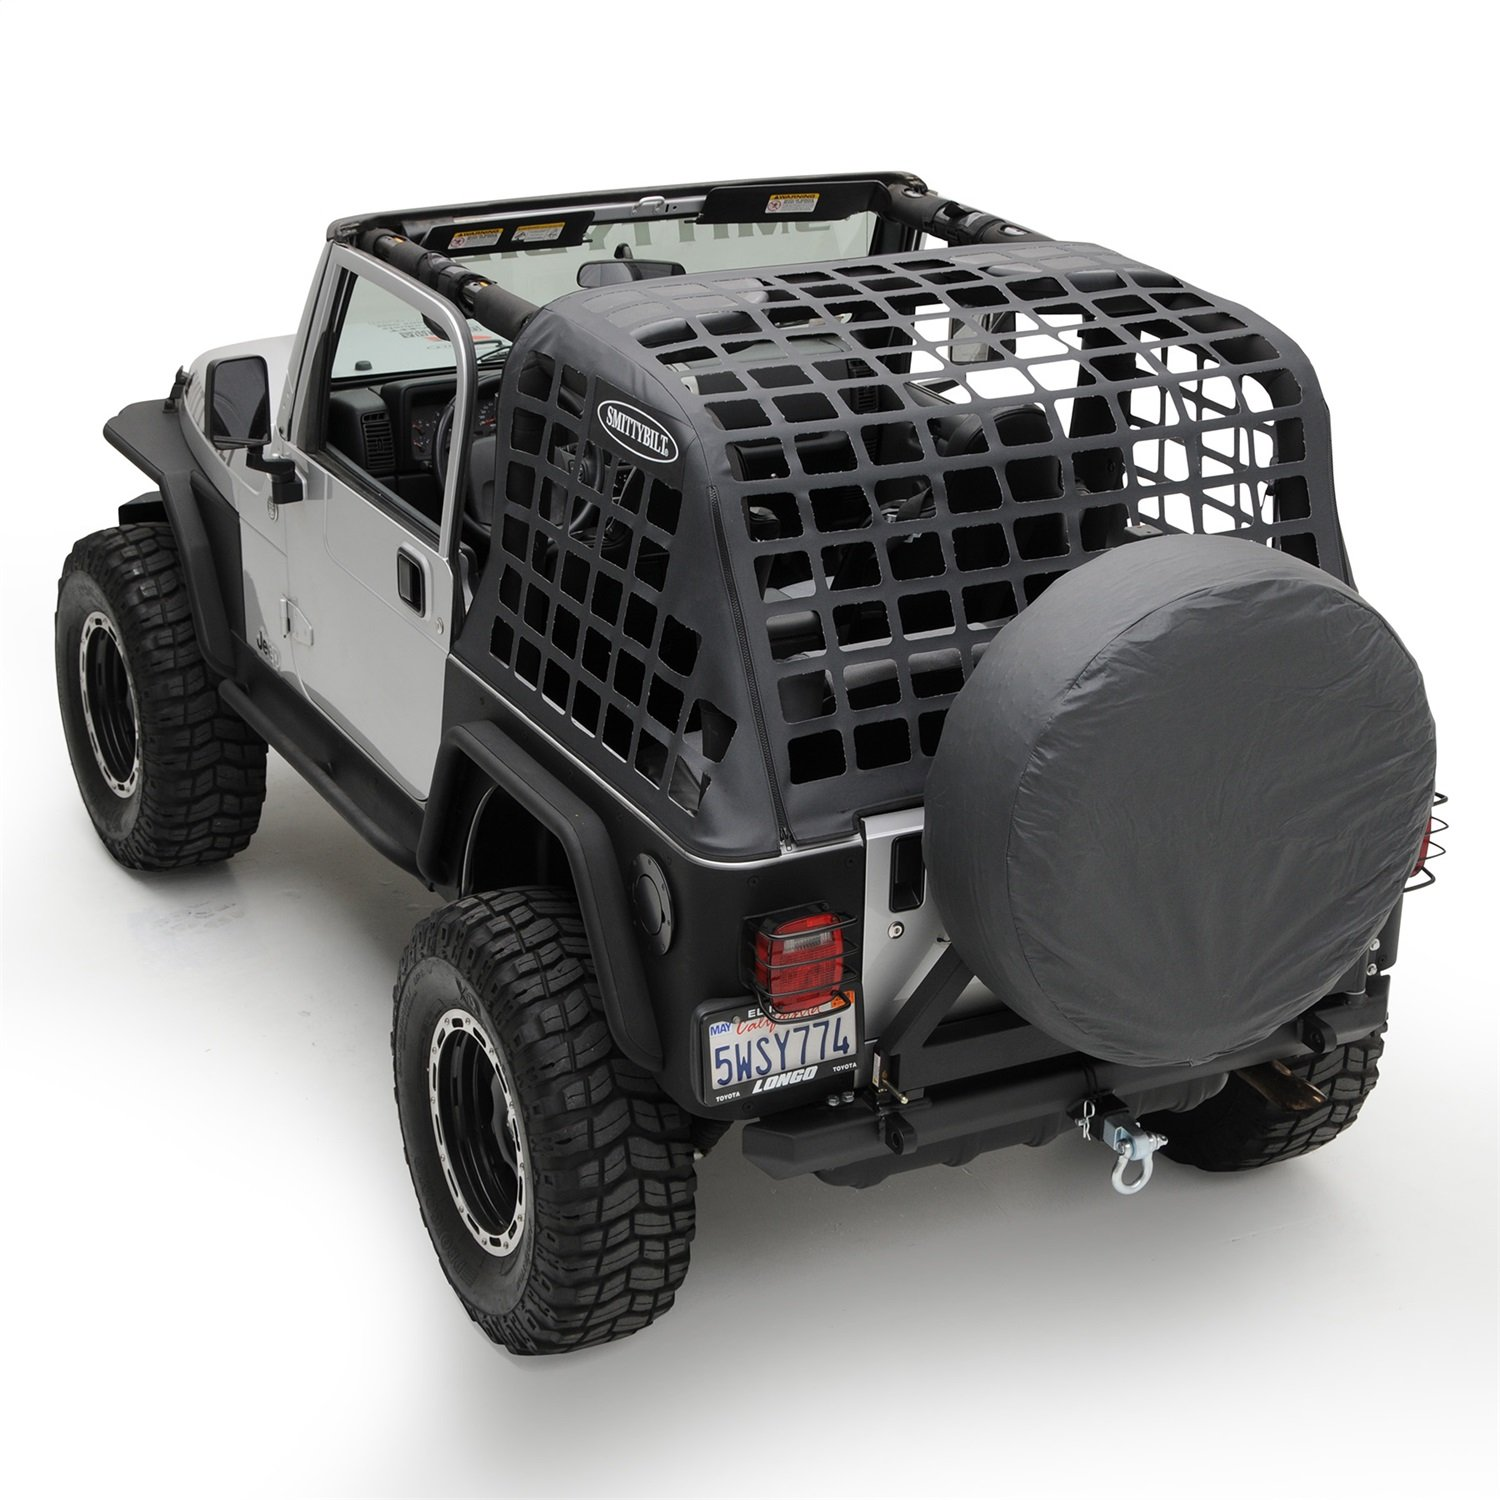 713dEd08jeL._SL1500_ Take A Look About Jeep Dog Accessories with Captivating Gallery Cars Review